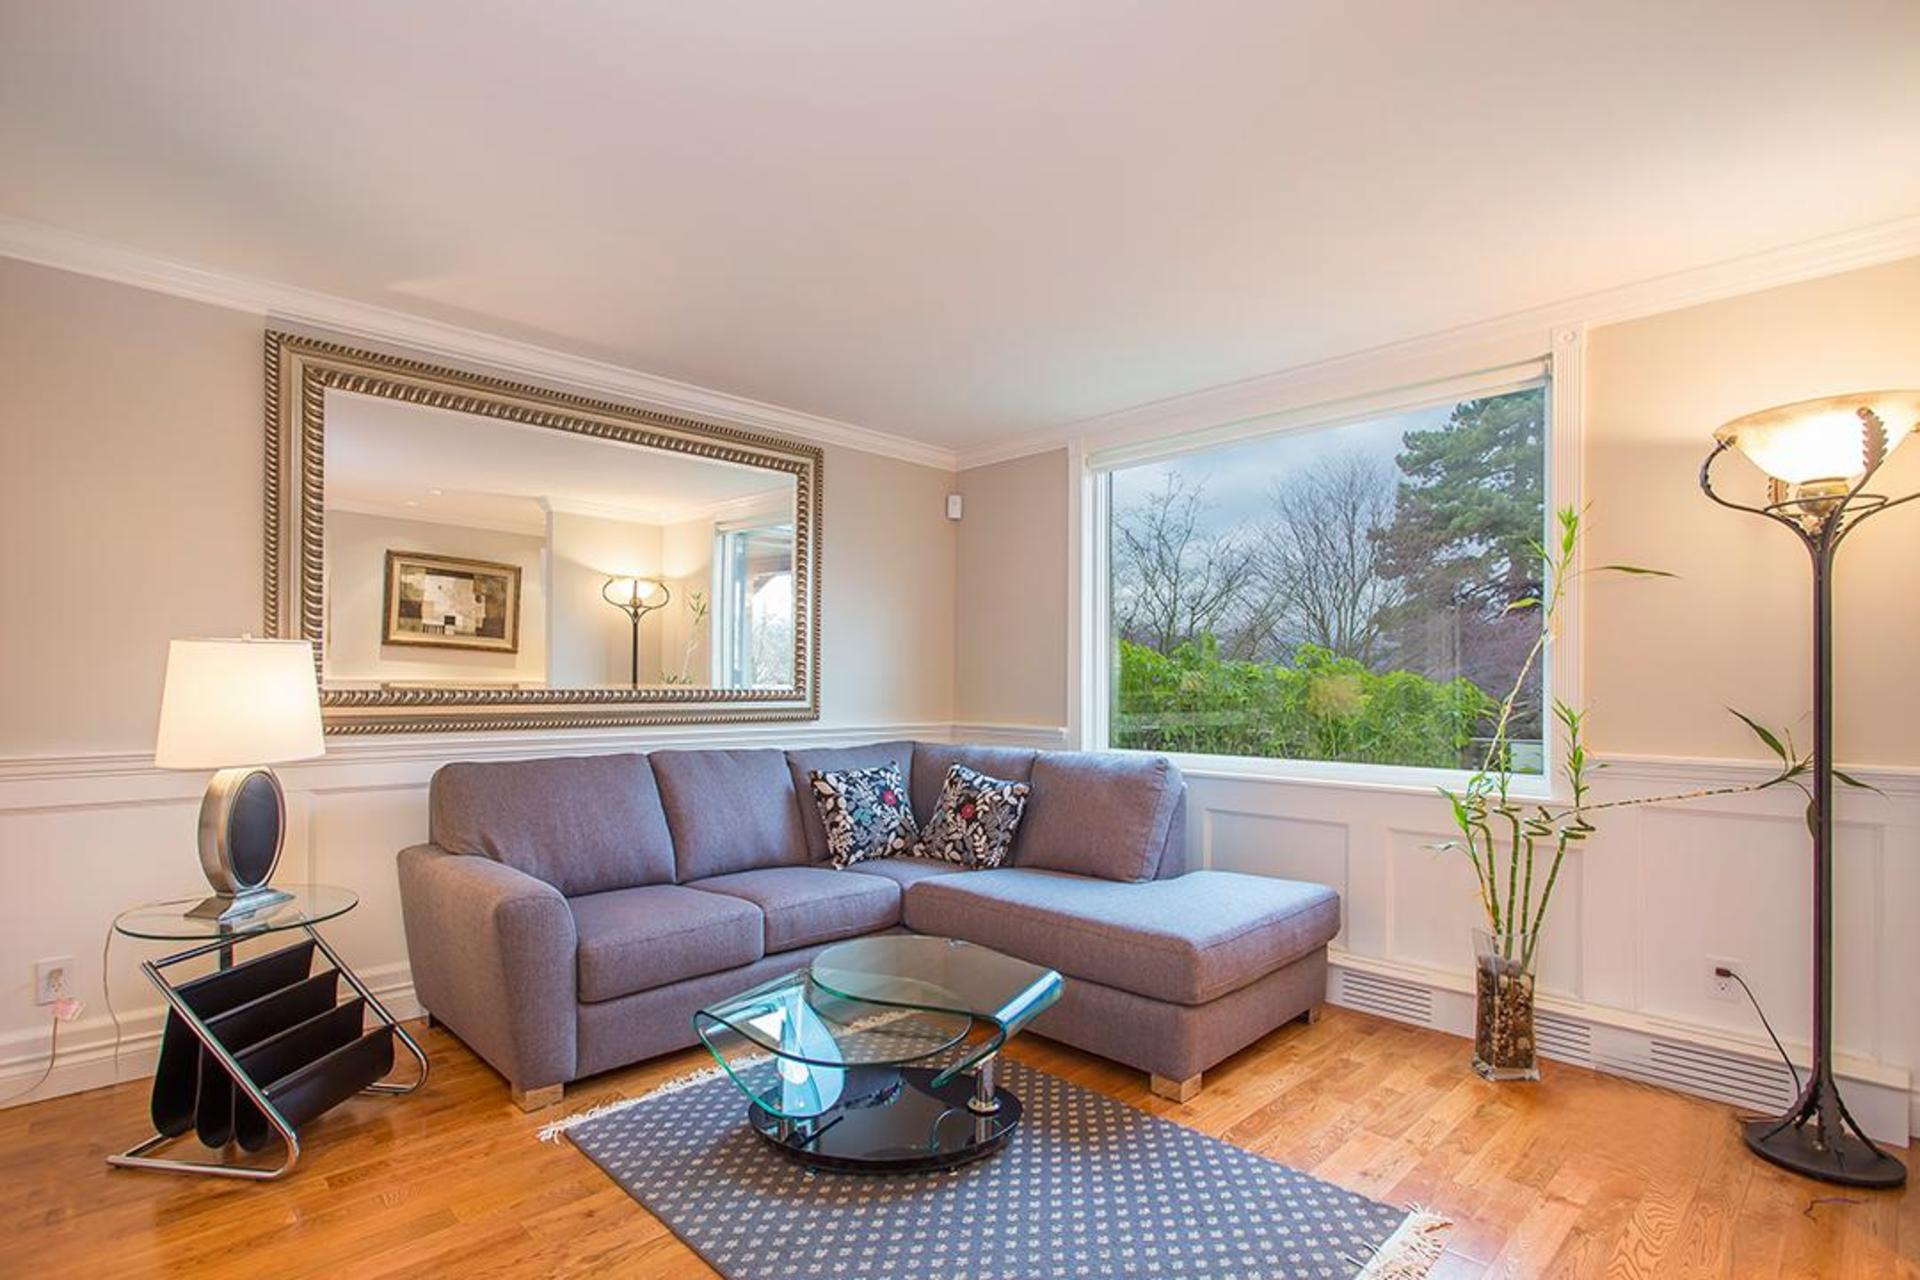 Living Room at Address Upon Request, Point Grey, Vancouver West